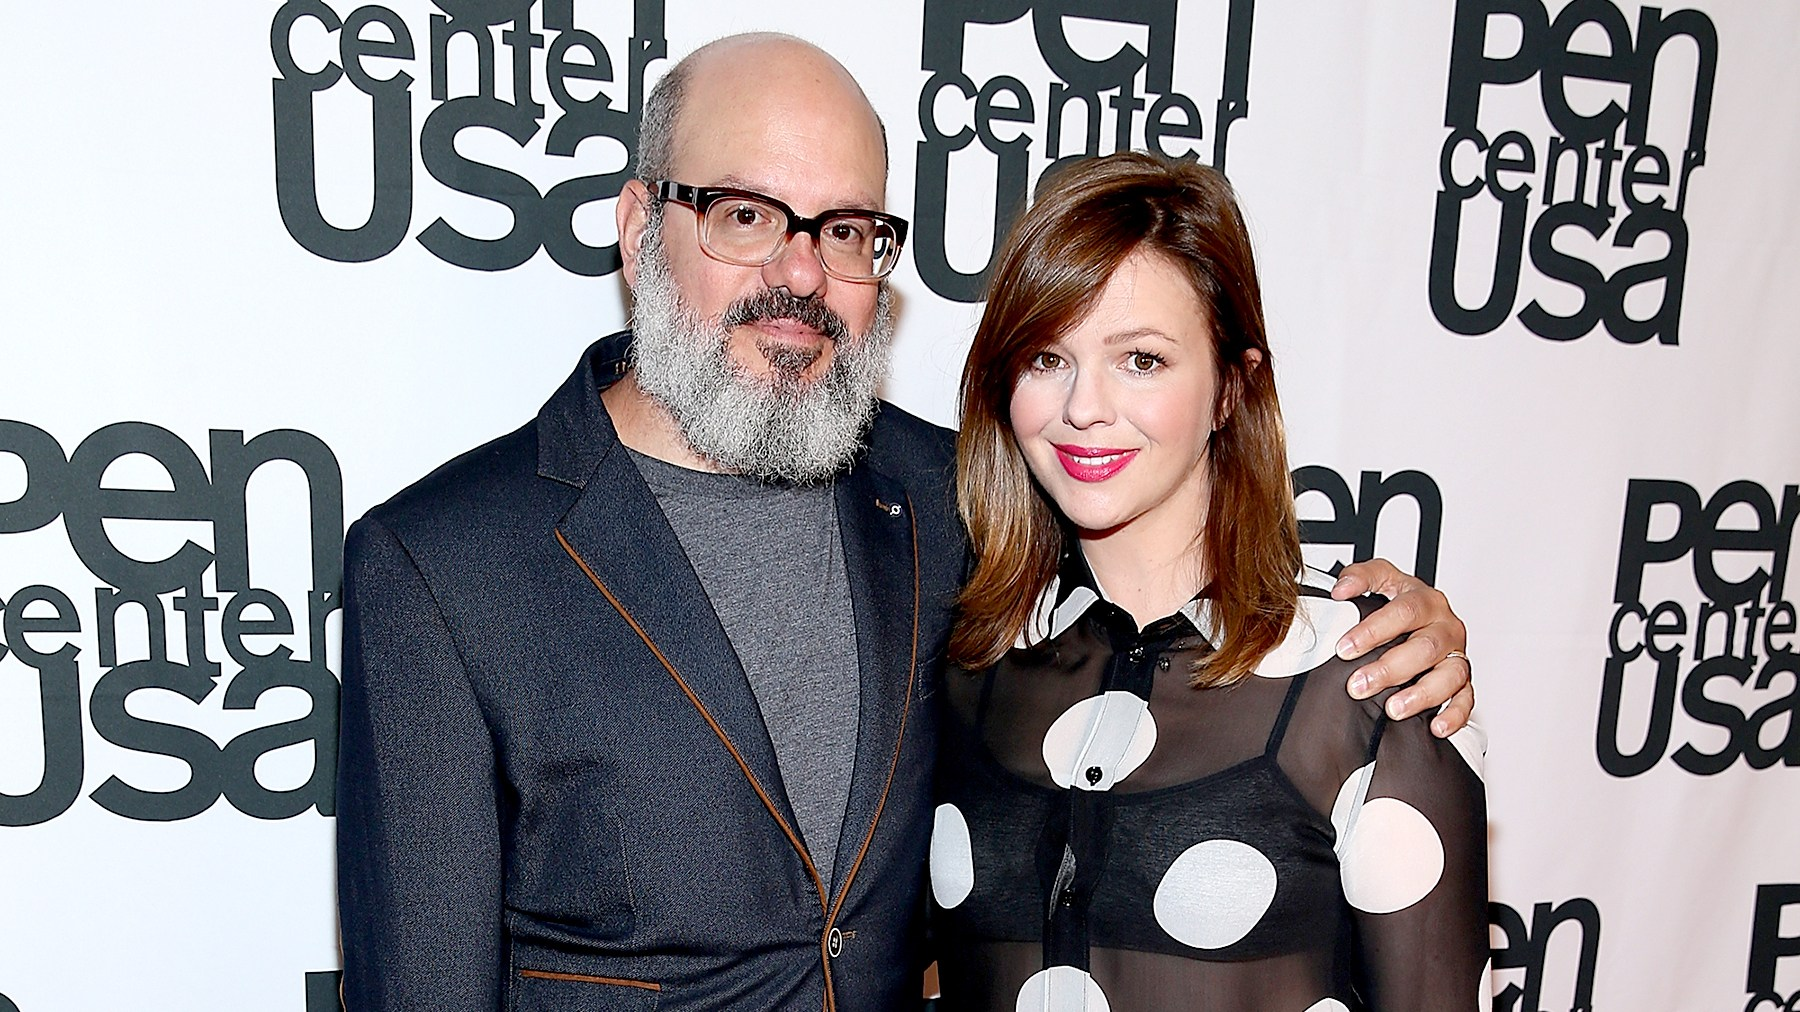 David Cross and Amber Tamblyn attend PEN Center USA's 26th Annual Literary Awards Festival honoring Isabel Allende at the Beverly Wilshire Four Seasons Hotel on September 28, 2016 in Beverly Hills, California.